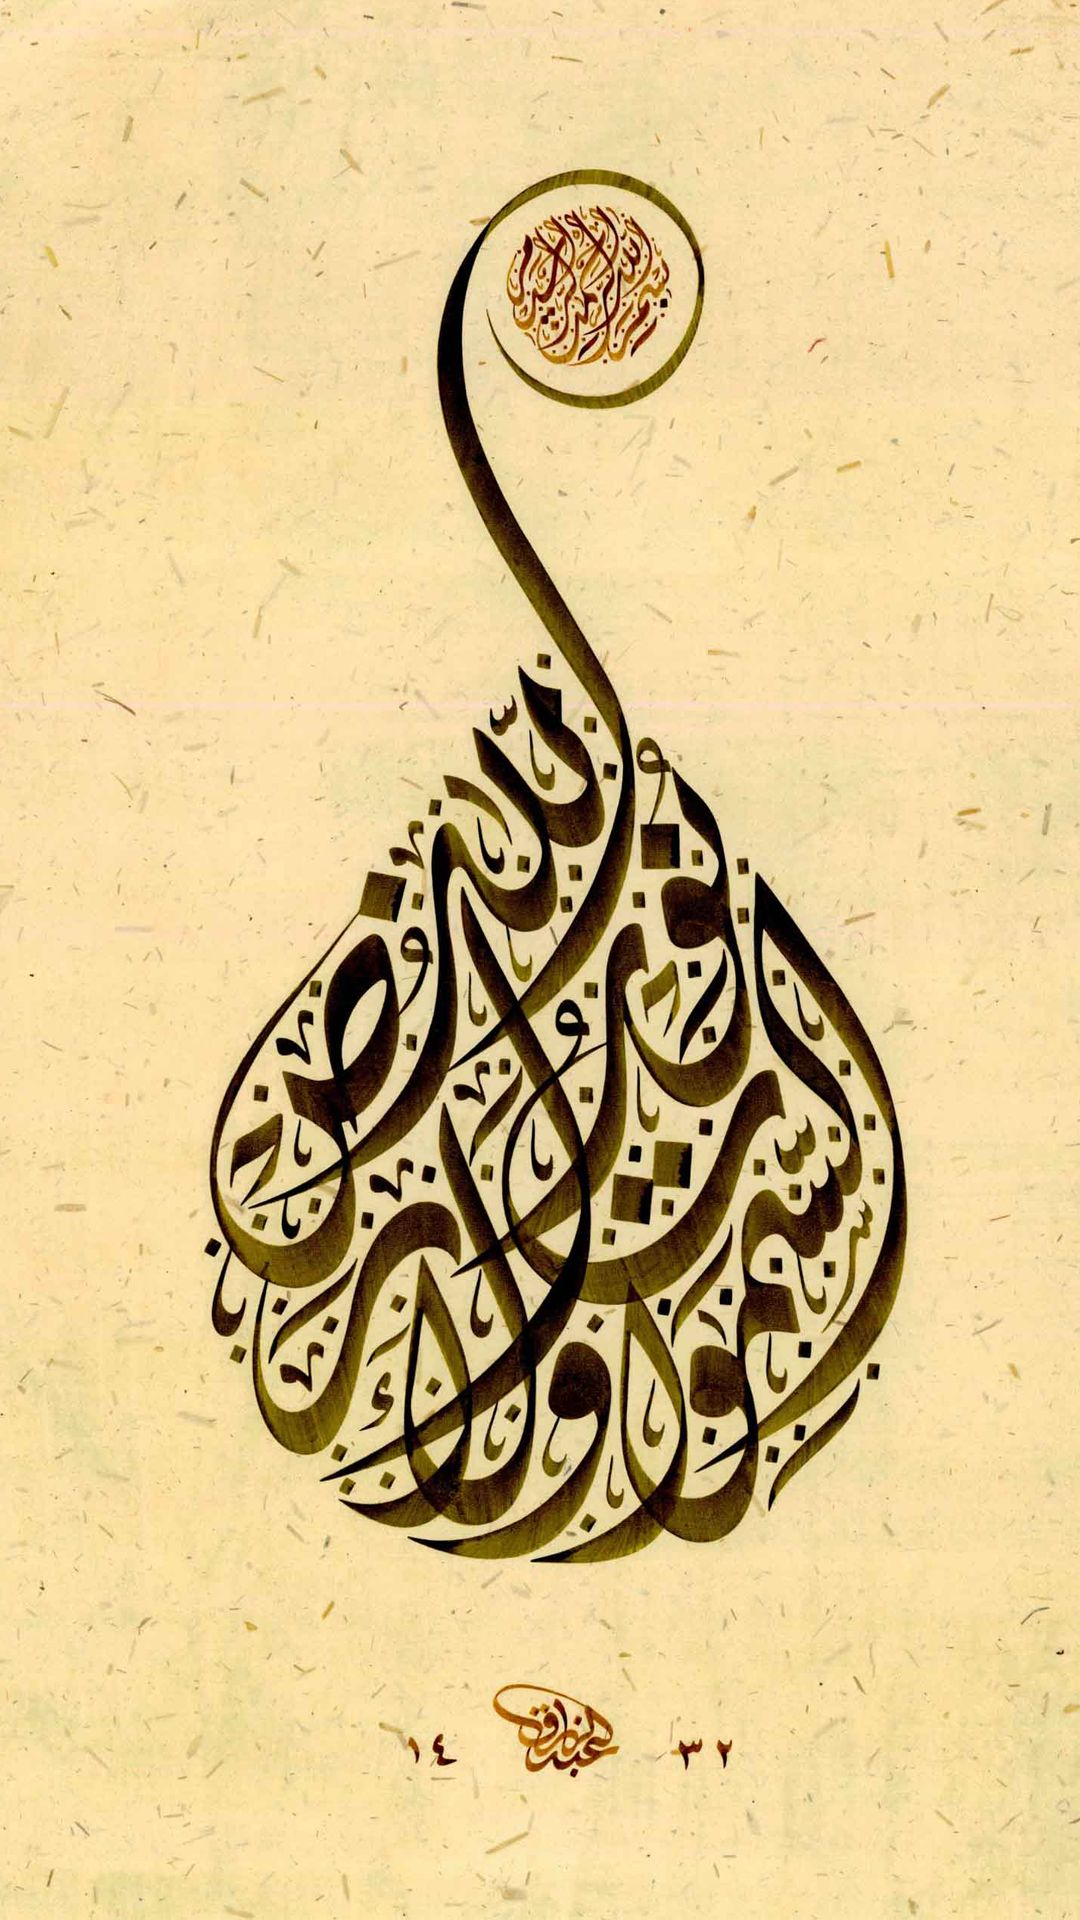 Best Islamic Wallpaper For 5 Inch Mobile Phone 3 Of 7 A